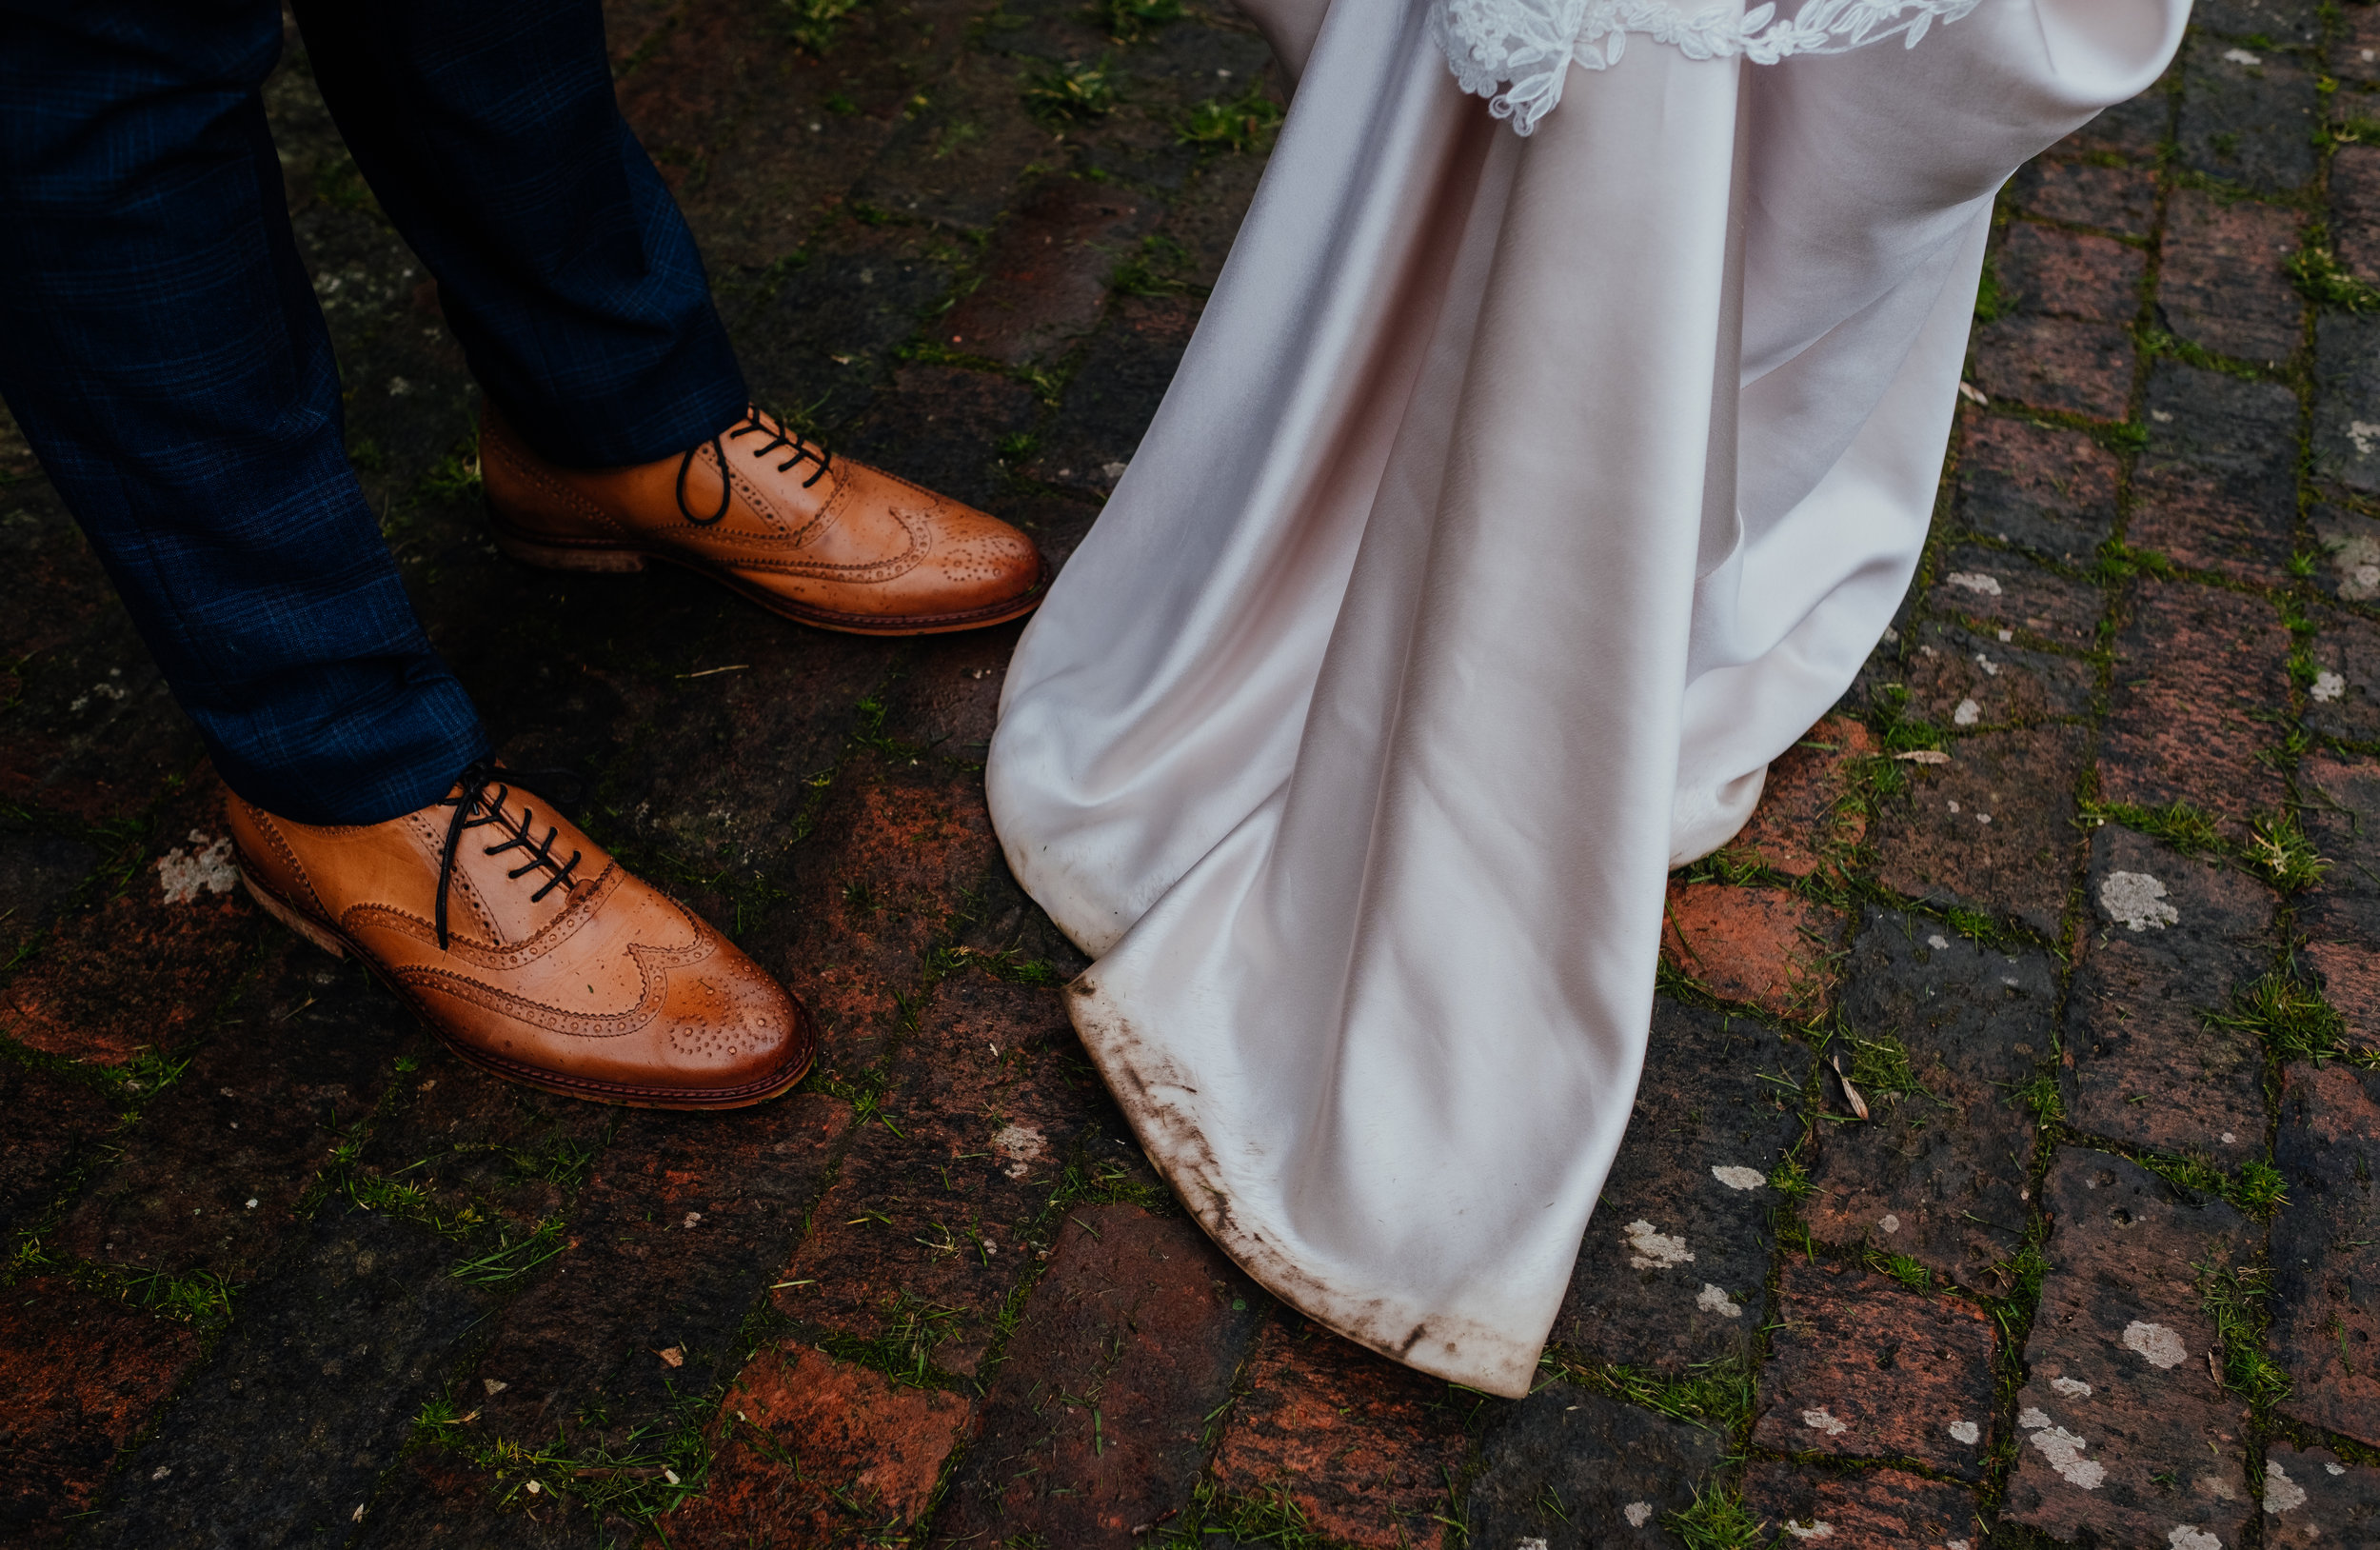 Groom's shoes and the dirty bottom of bride's wedding dress